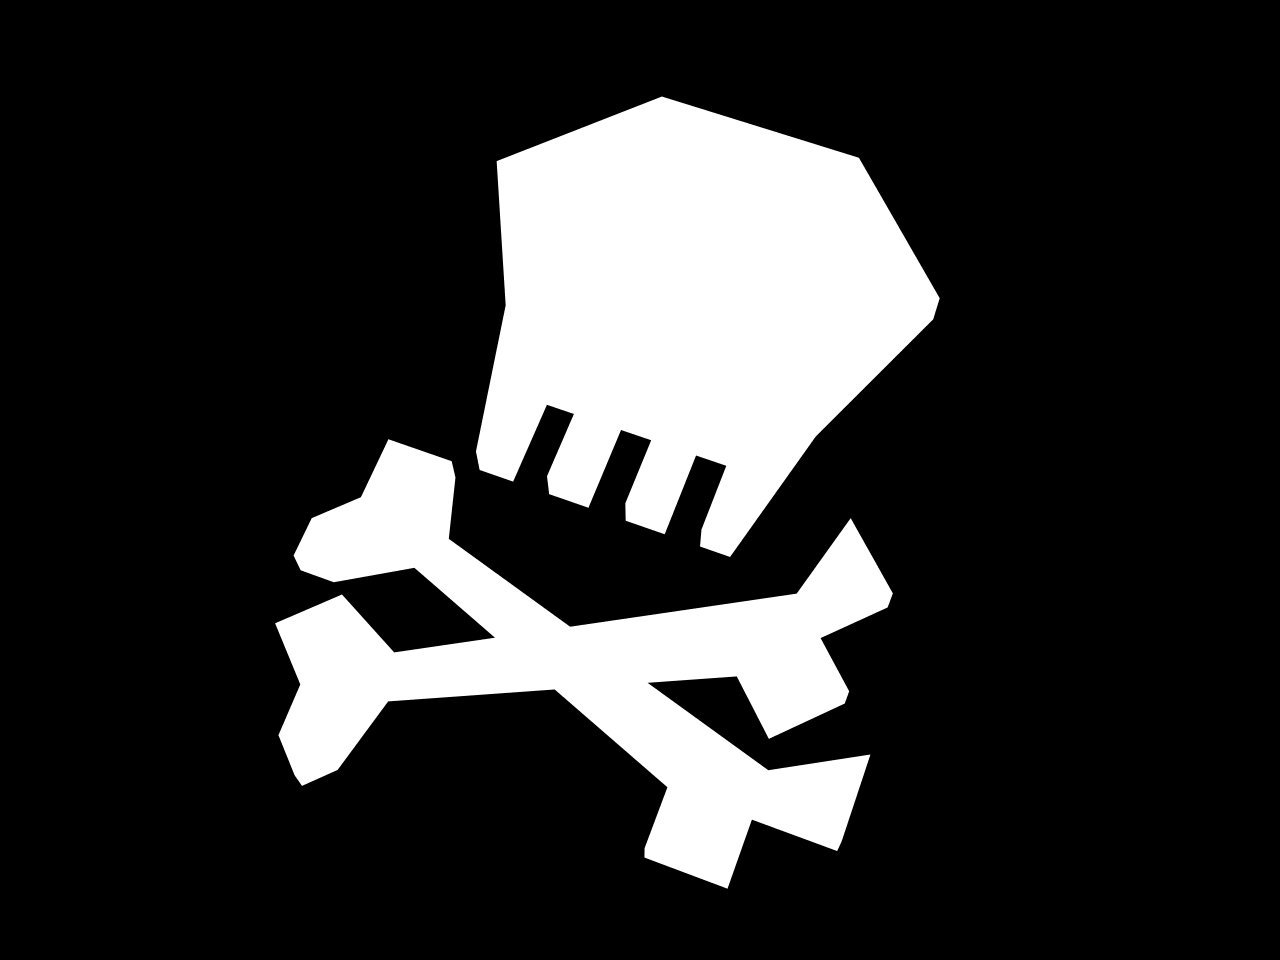 free pirate skeleton images pictures and royalty free stock